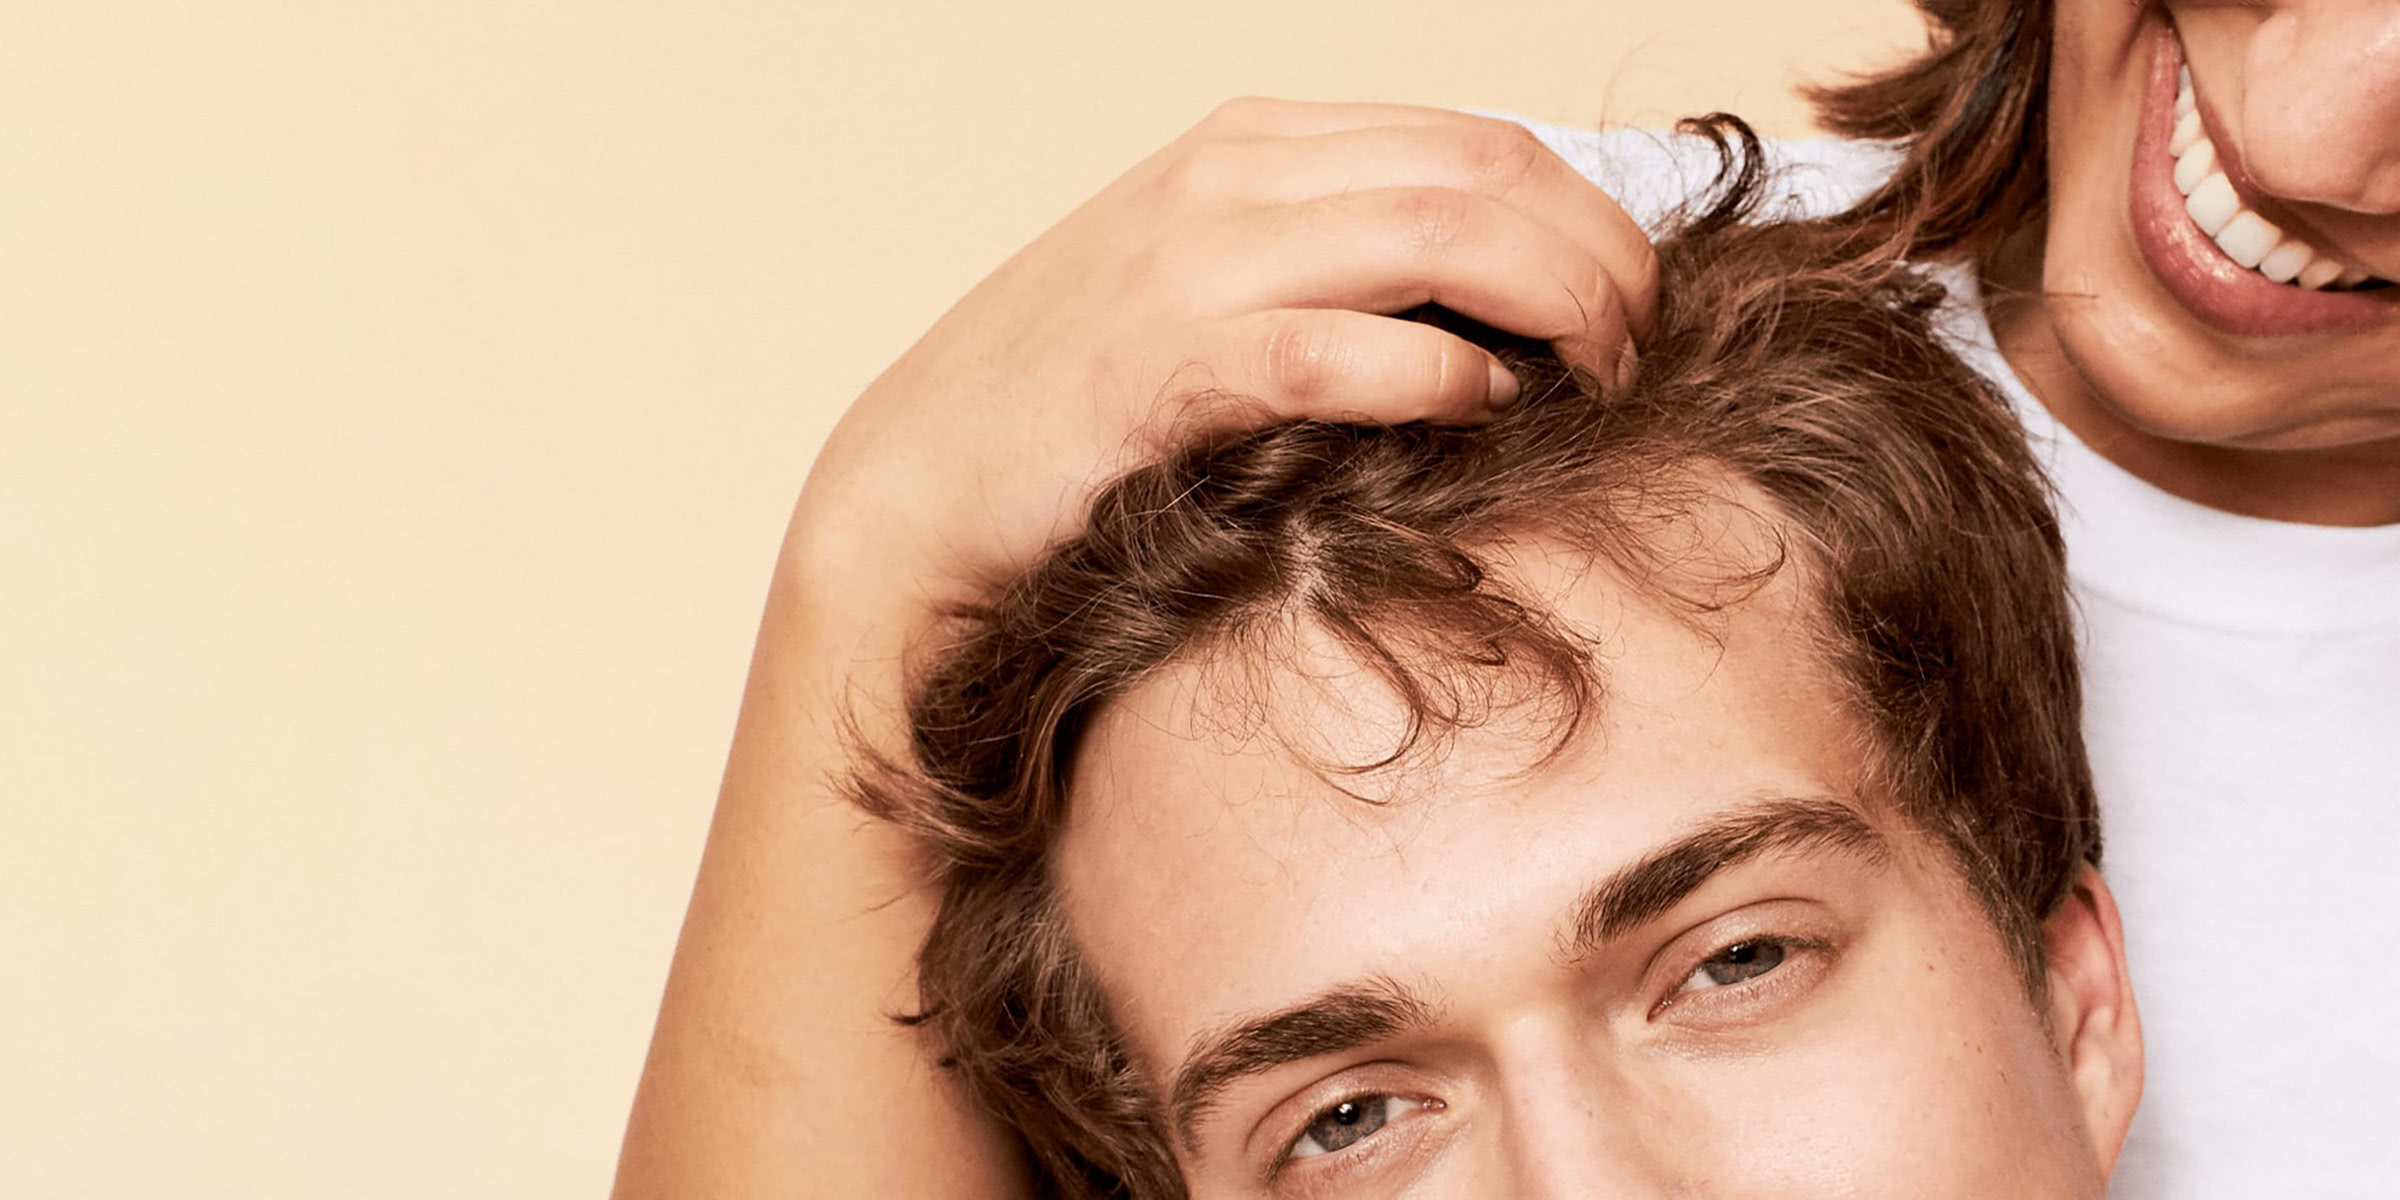 hims hair loss solutions review - Luxe Digital